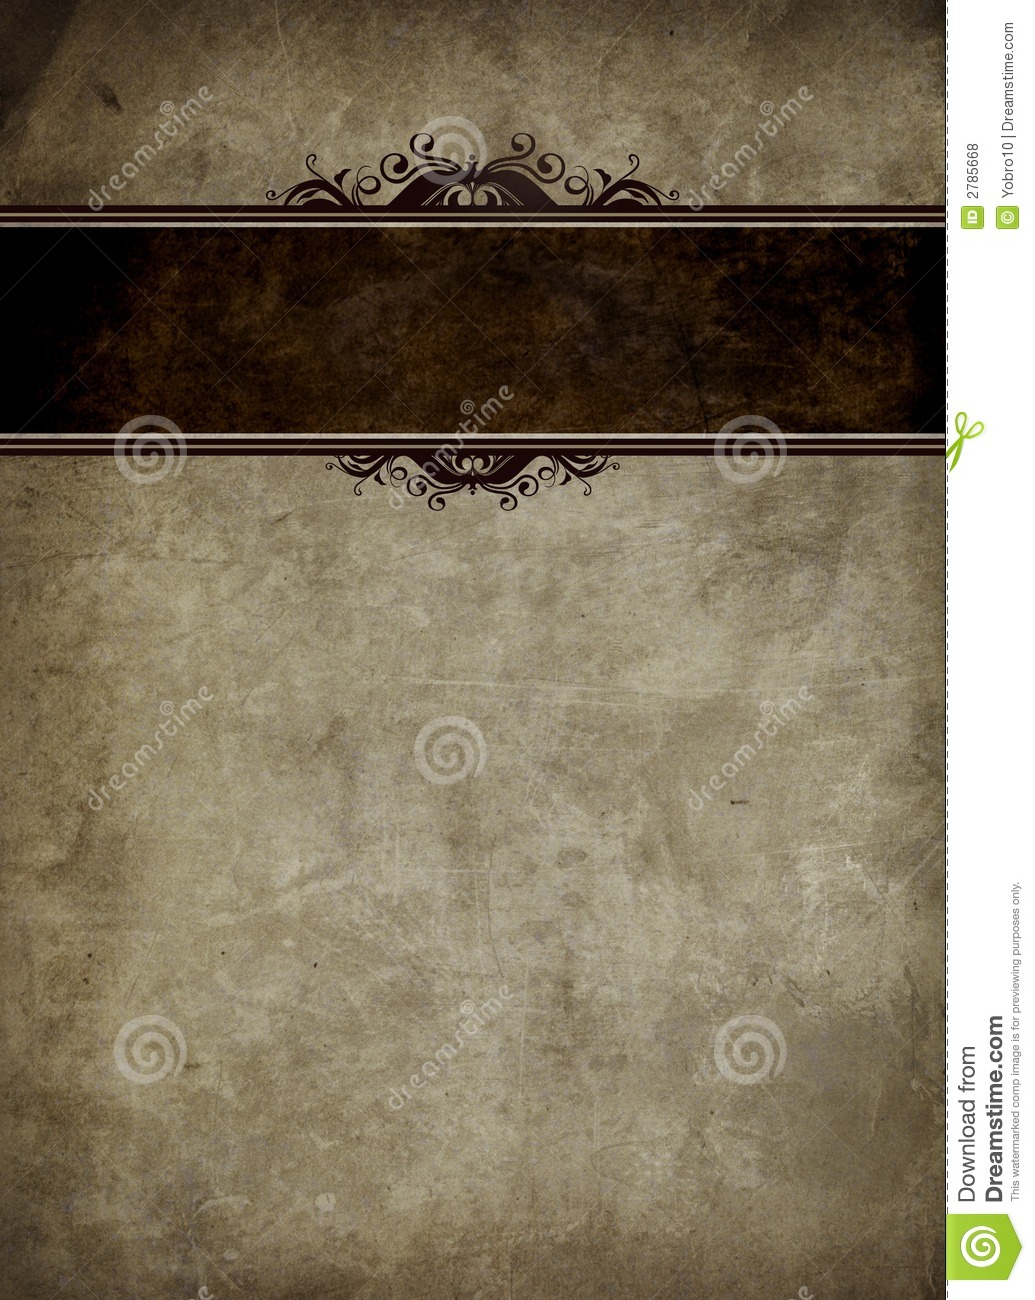 Book Cover Background Free : Rough book cover royalty free stock photos image